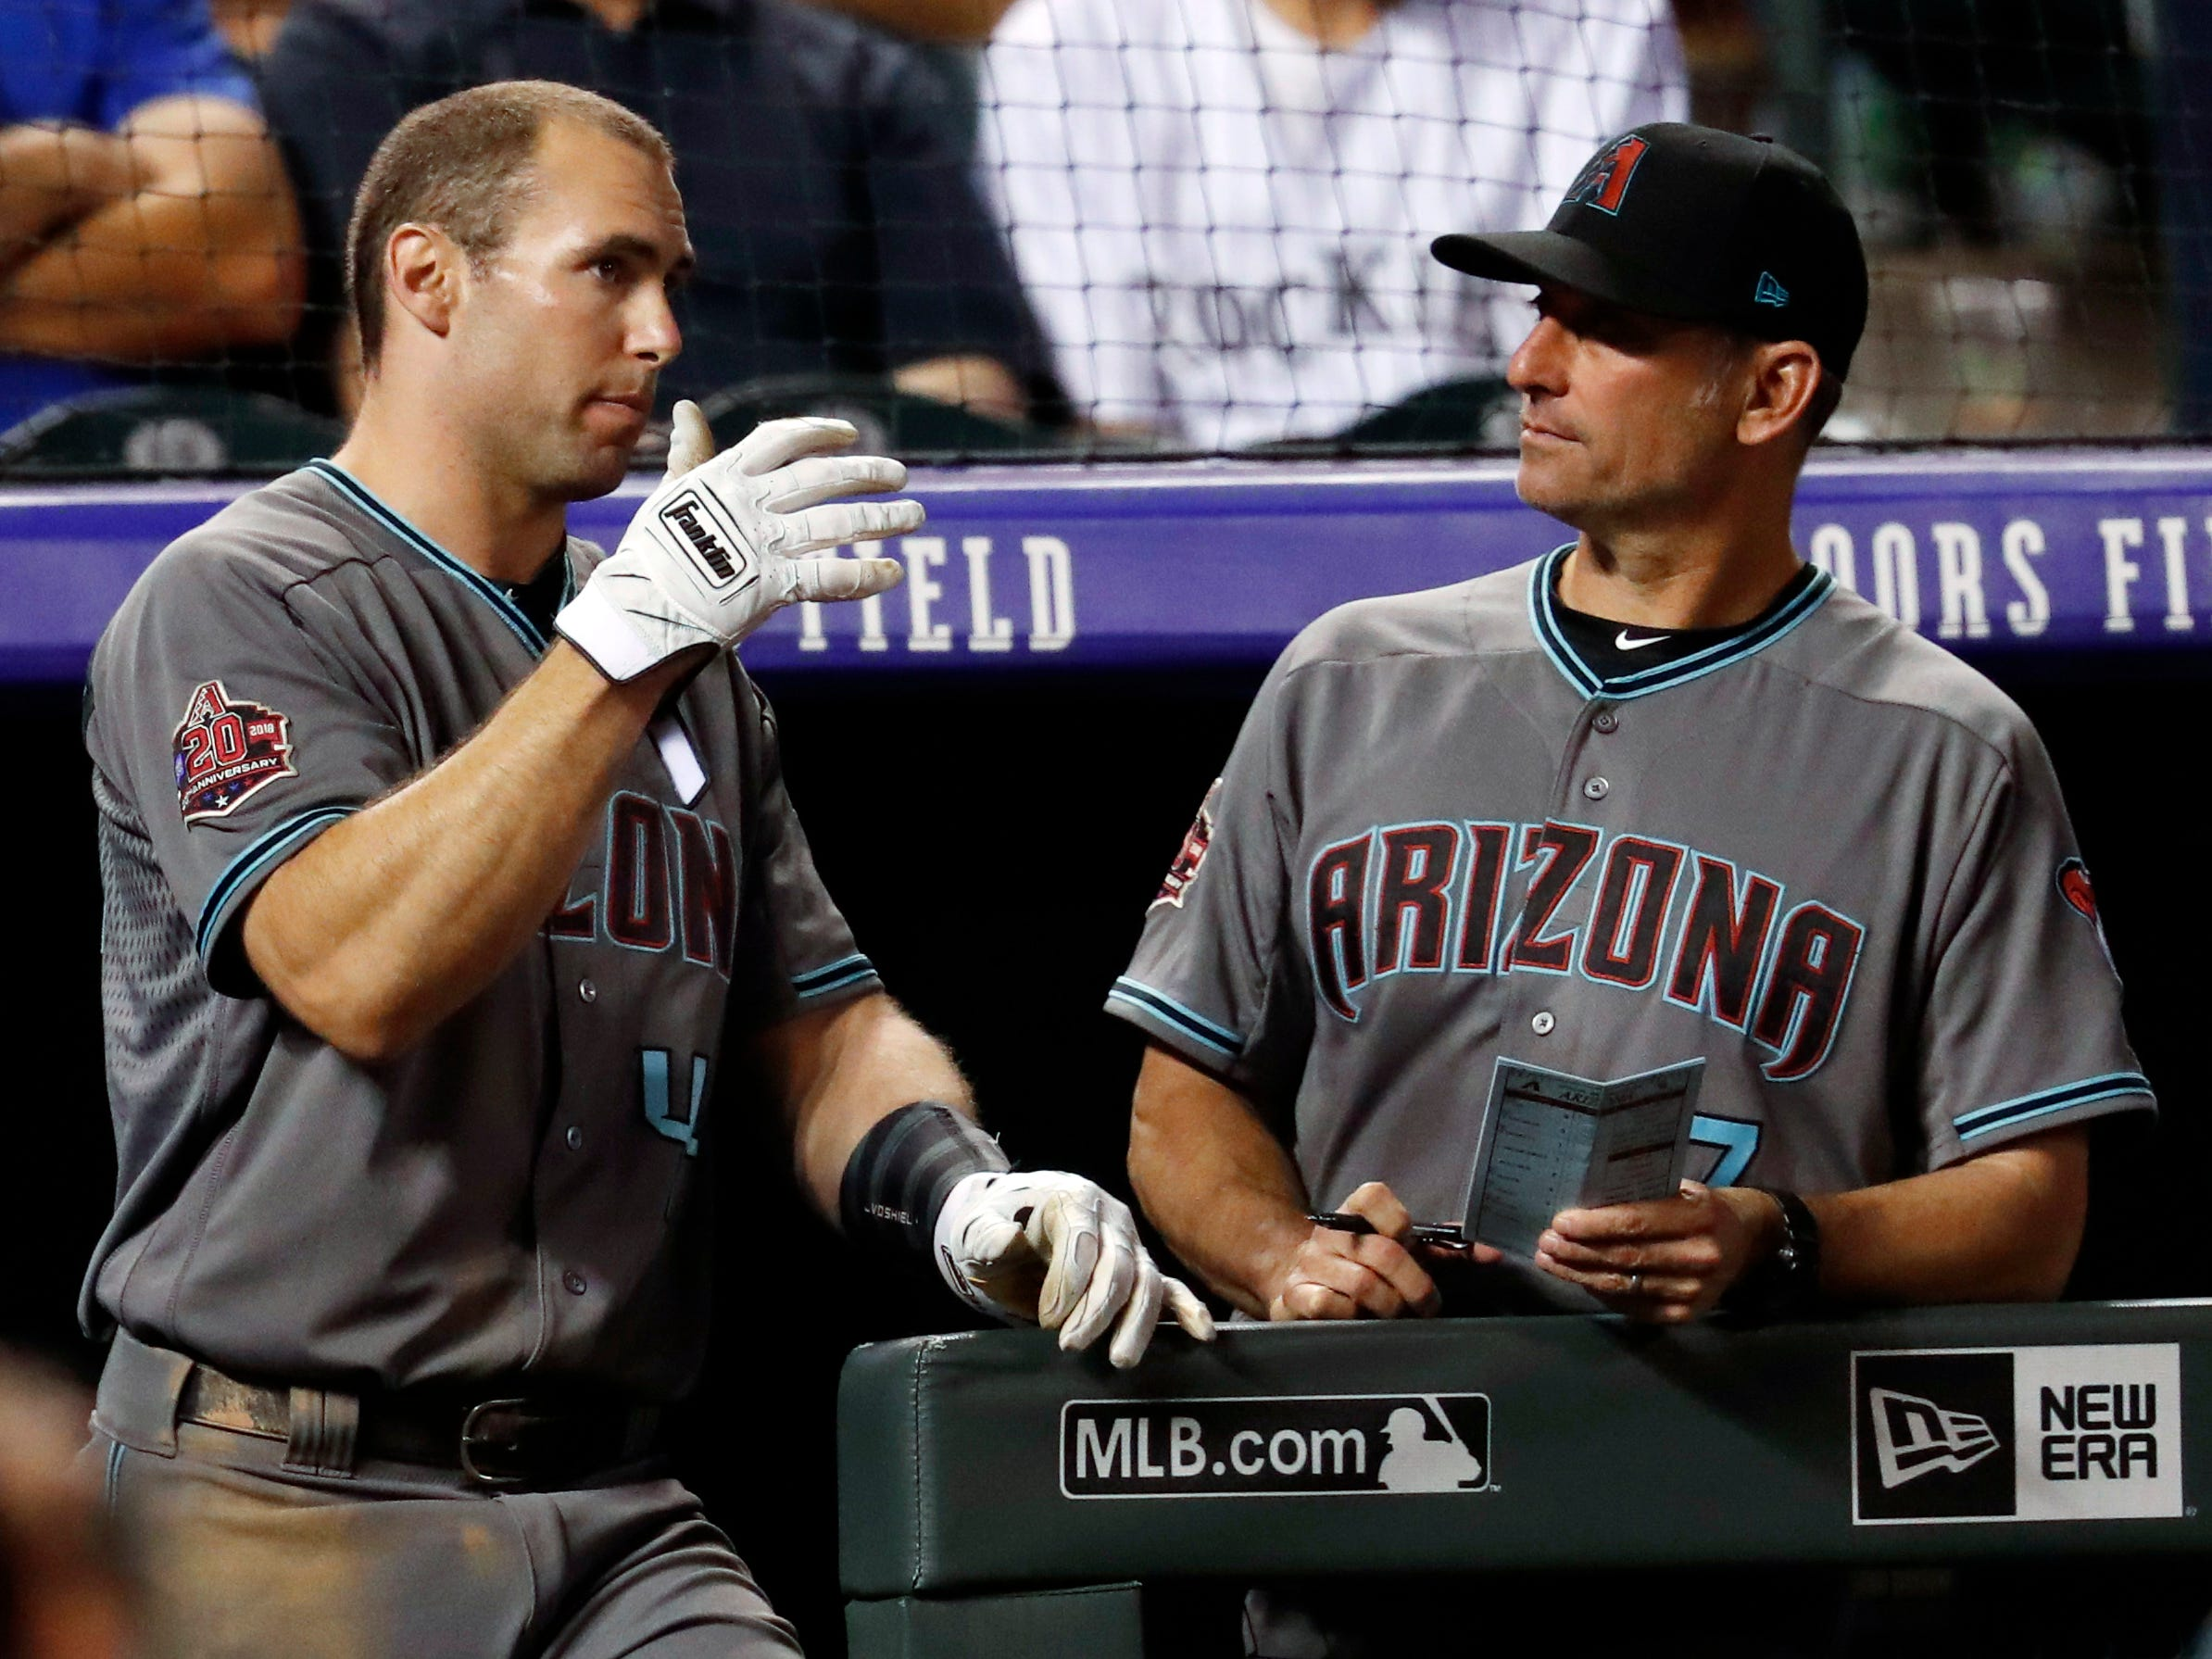 Arizona Diamondbacks first baseman Paul Goldschmidt, left, talks with manager Torey Lovullo as the Diamondbacks bat against the Colorado Rockies in the ninth inning of a baseball game, Tuesday, Sept. 11, 2018, in Denver. Arizona won 6-3.